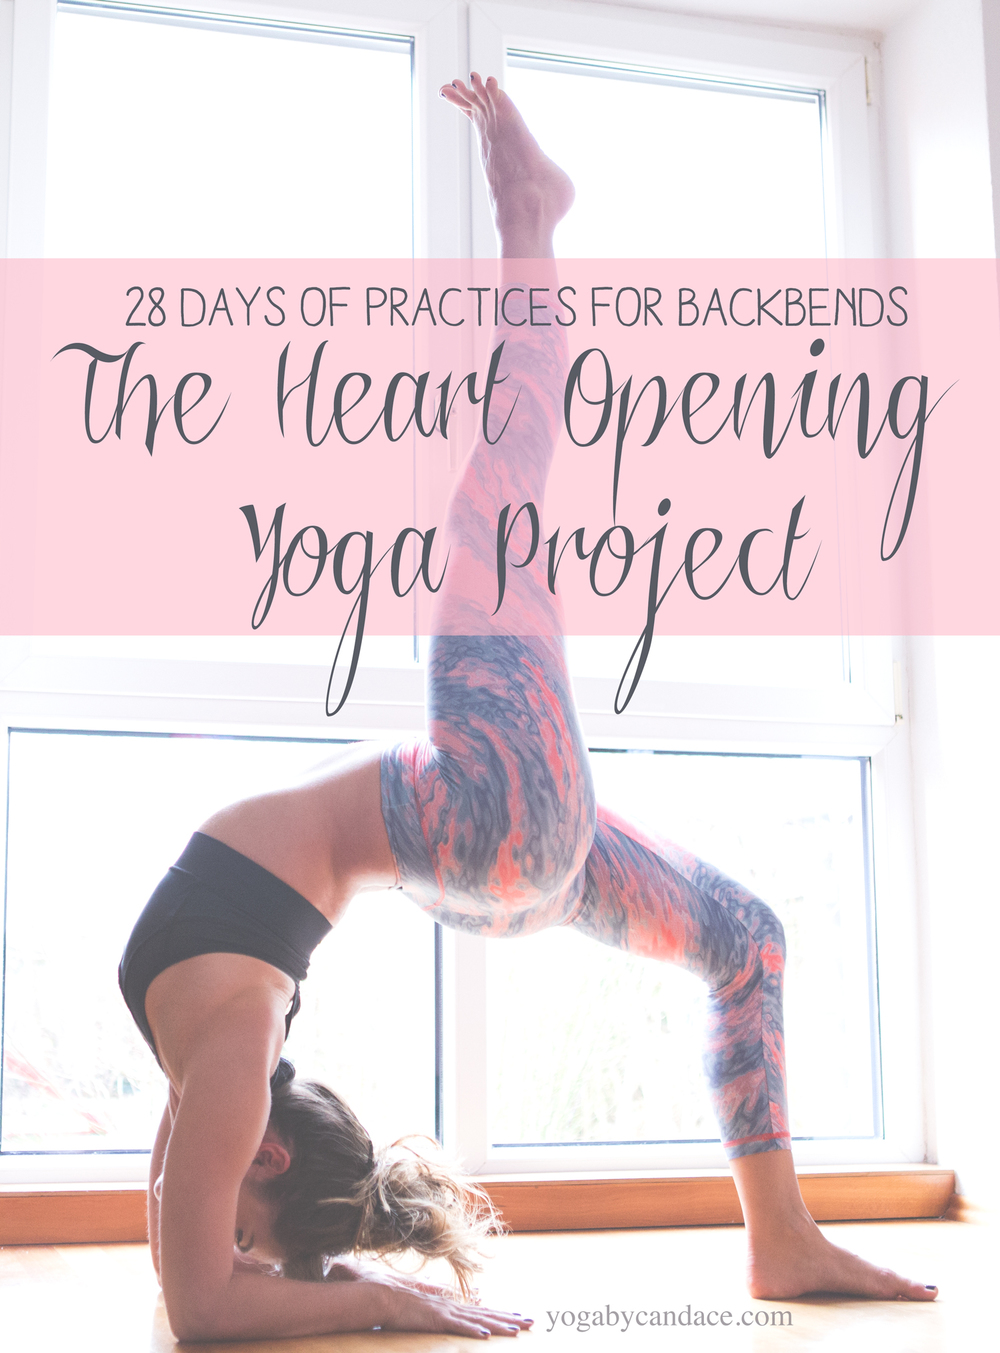 Pin now, practice later! 28 Day heart opening yoga project.  Wearing:  Liquido Active pants ,  Alala bra .